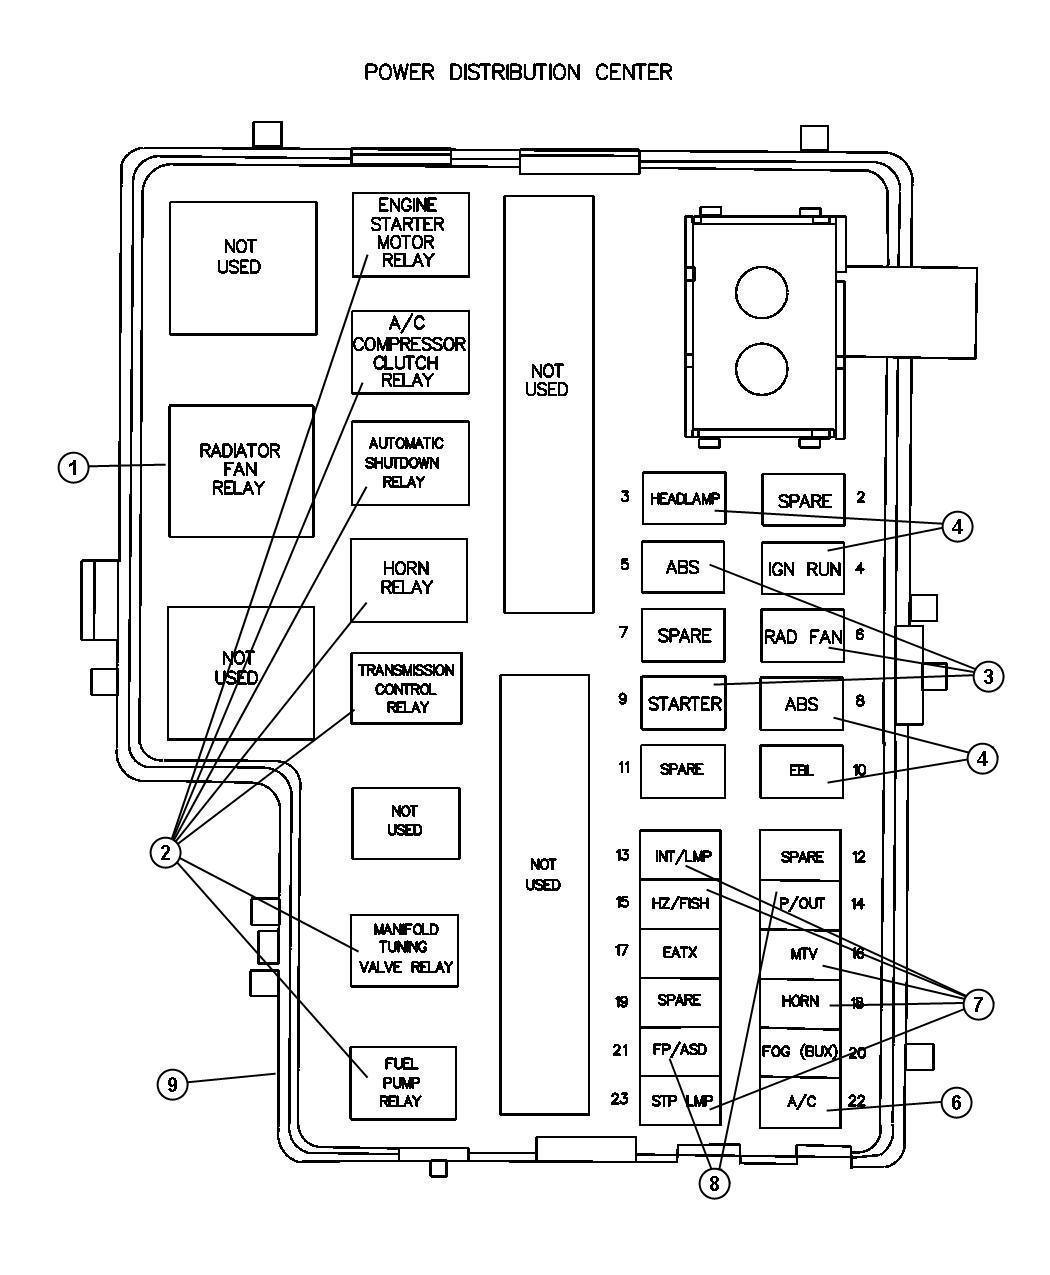 Wiring Diagram For Starter Solenoid 2000 Dodge Neon from factorychryslerparts.com